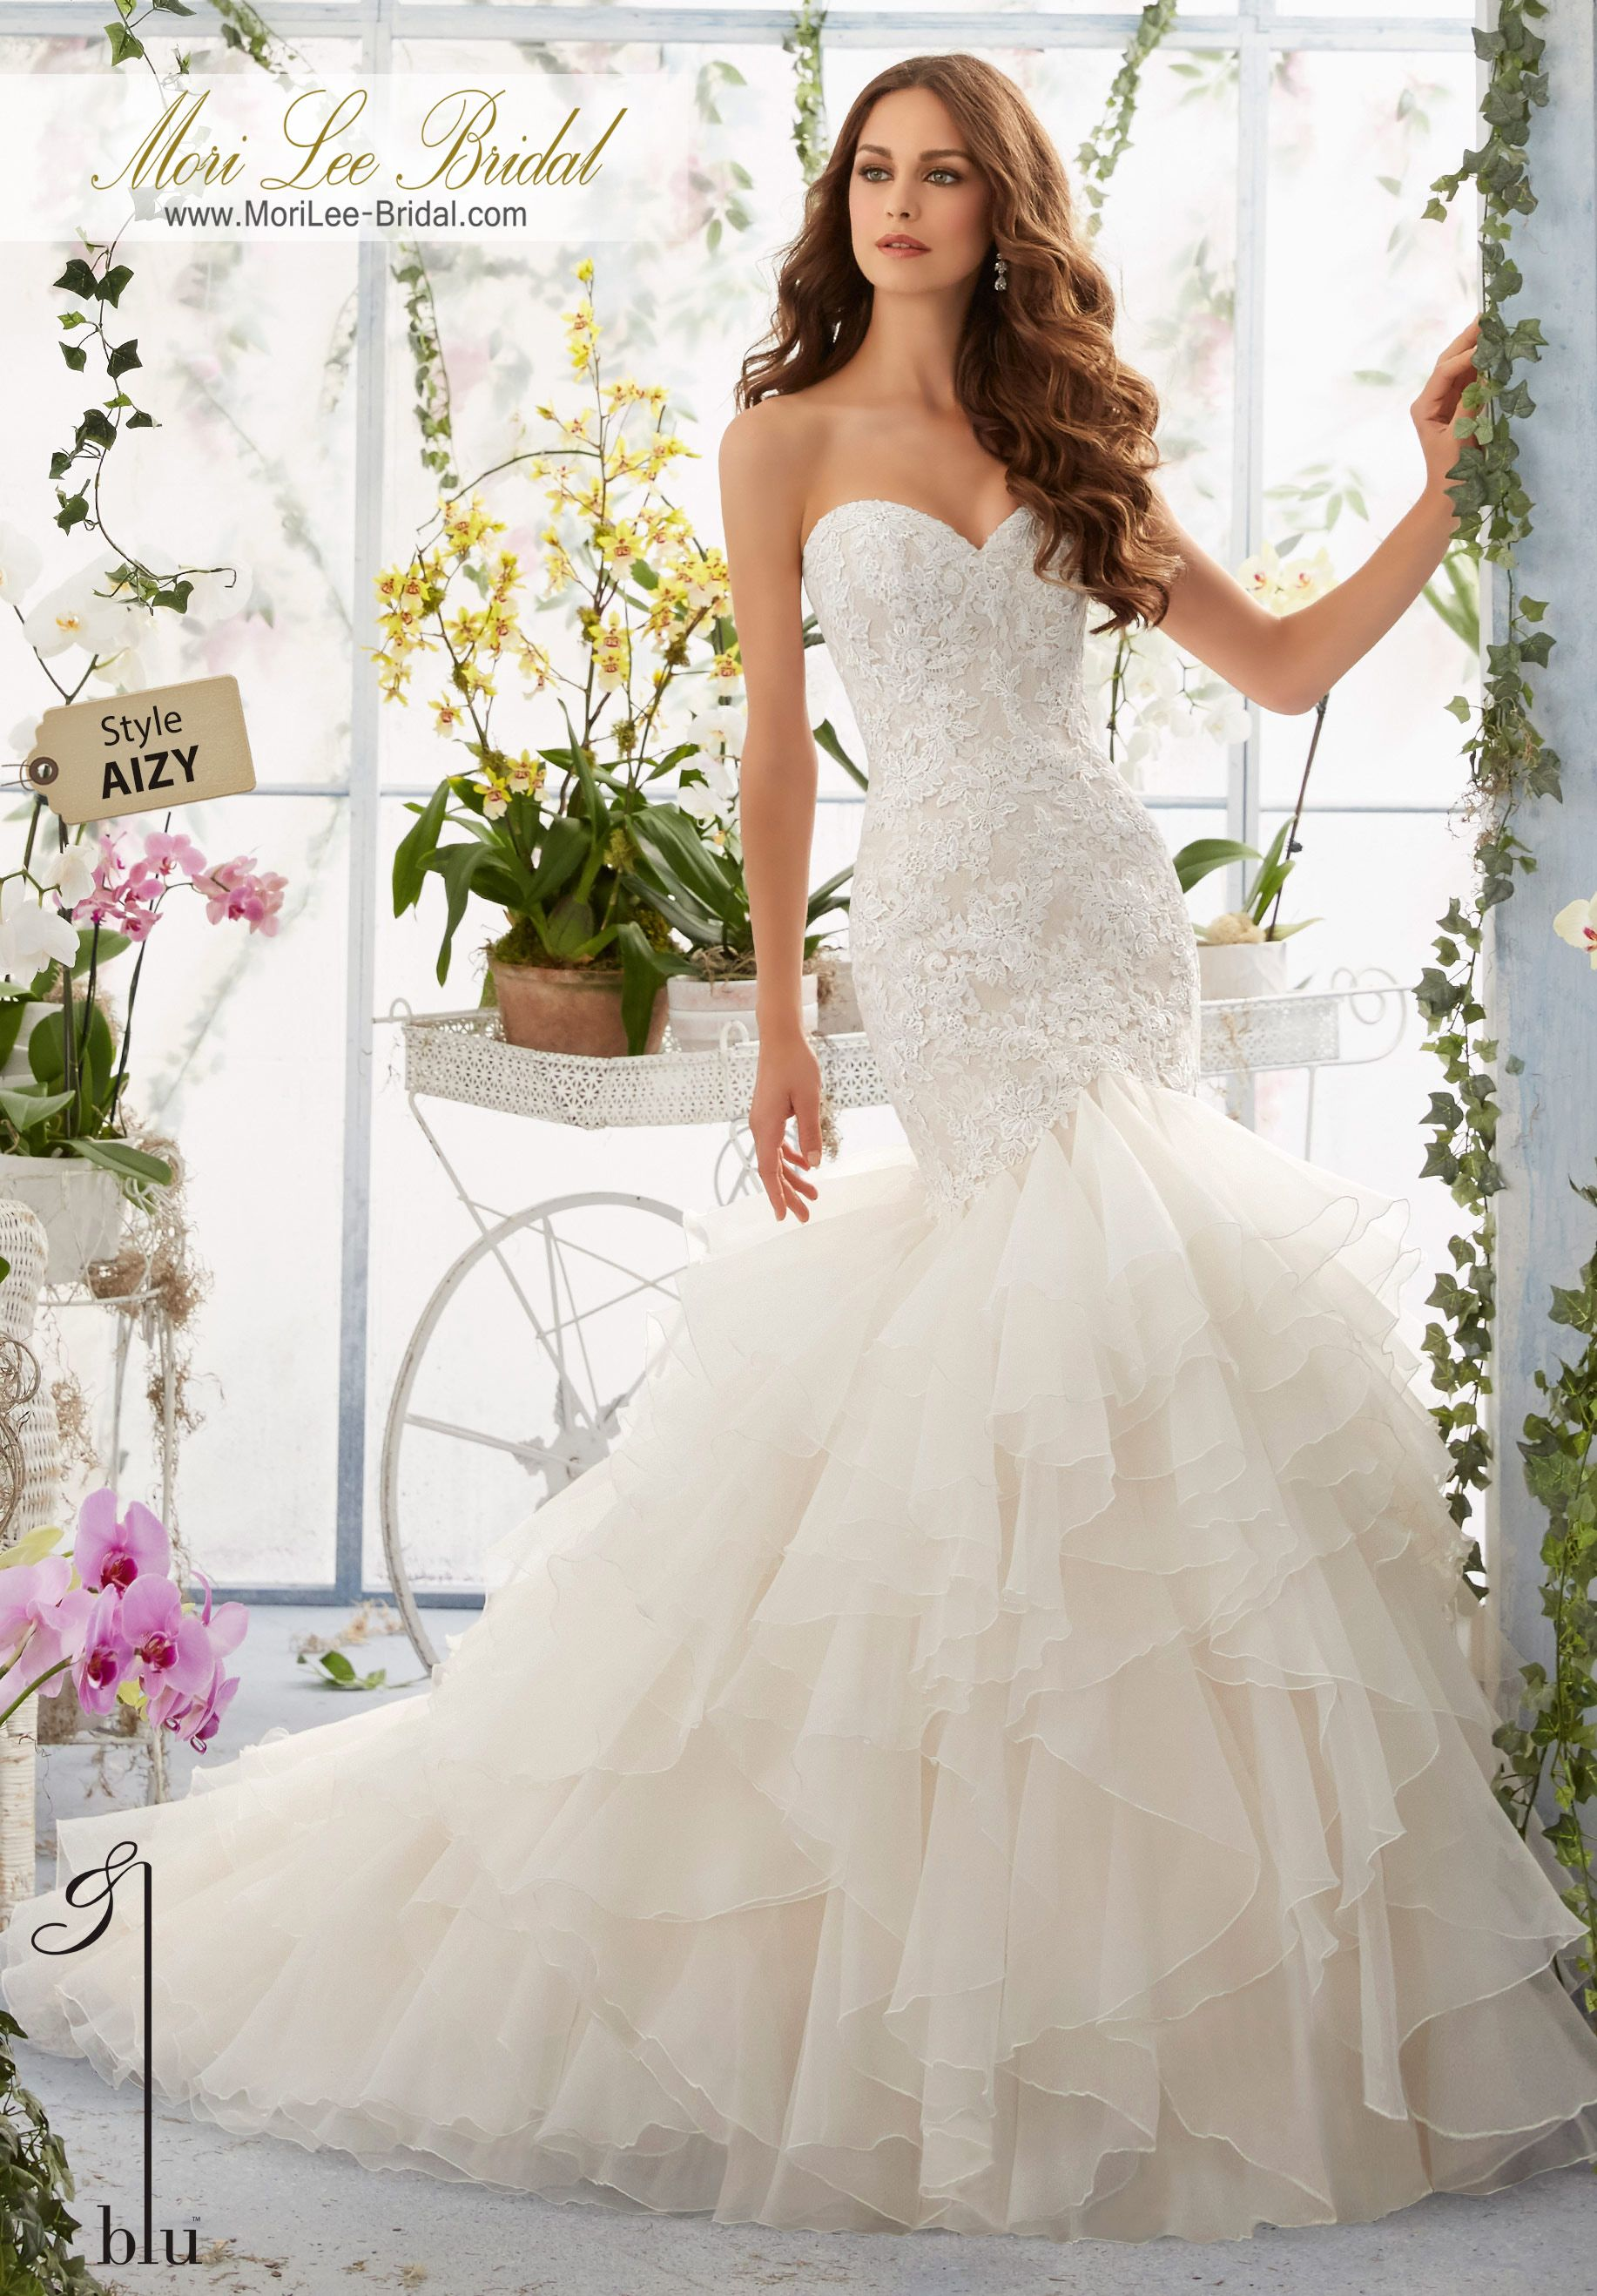 Dress style aizy venice lace appliques over chantilly lace onto the